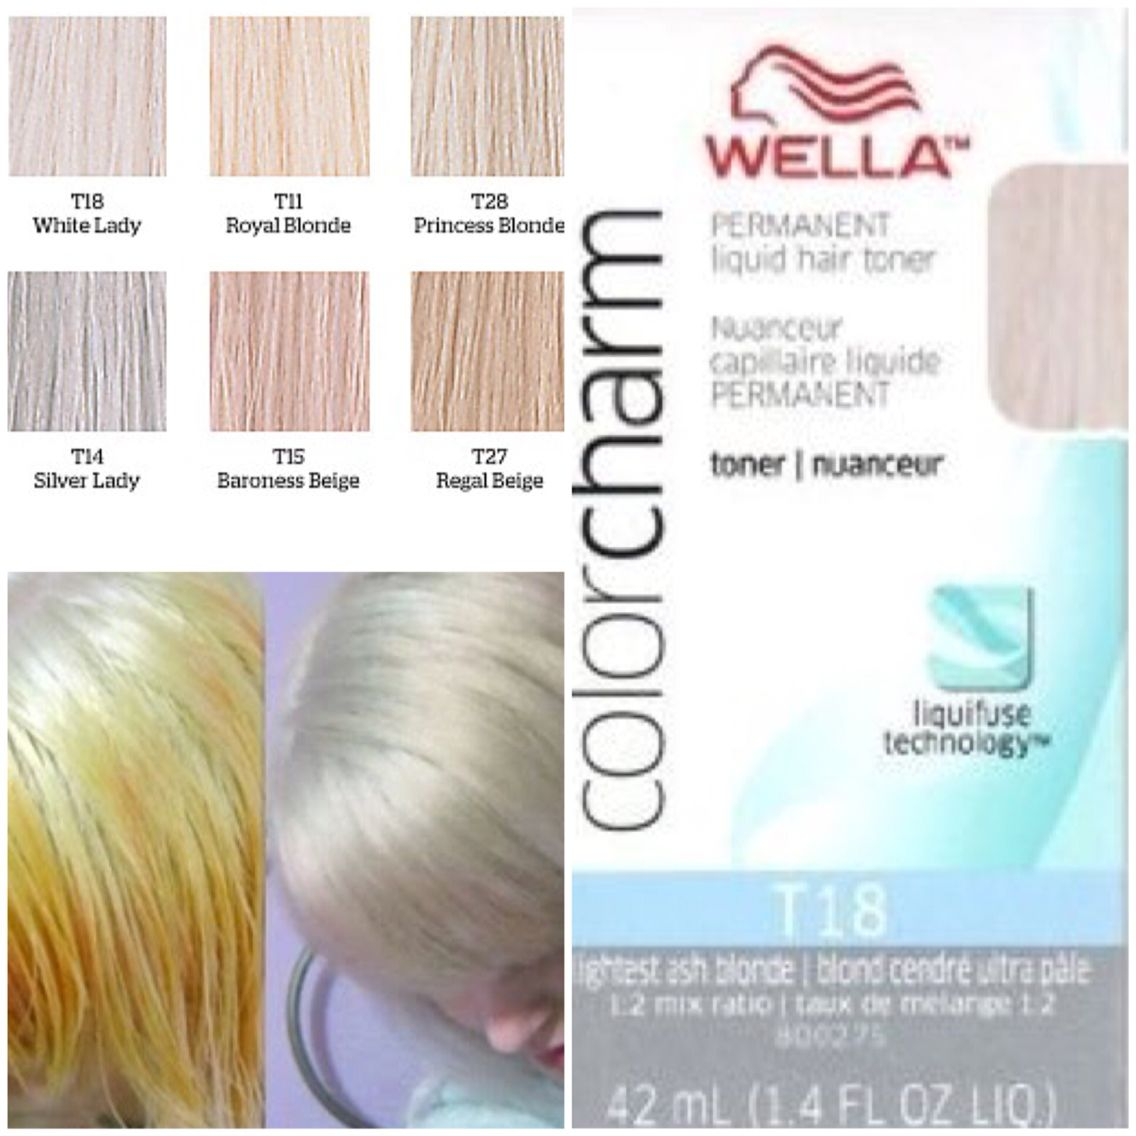 Wella  toner for blonde platinum hair pre lighten the with bleach to desired level before applying if my roots are extremely dark  also rh pinterest